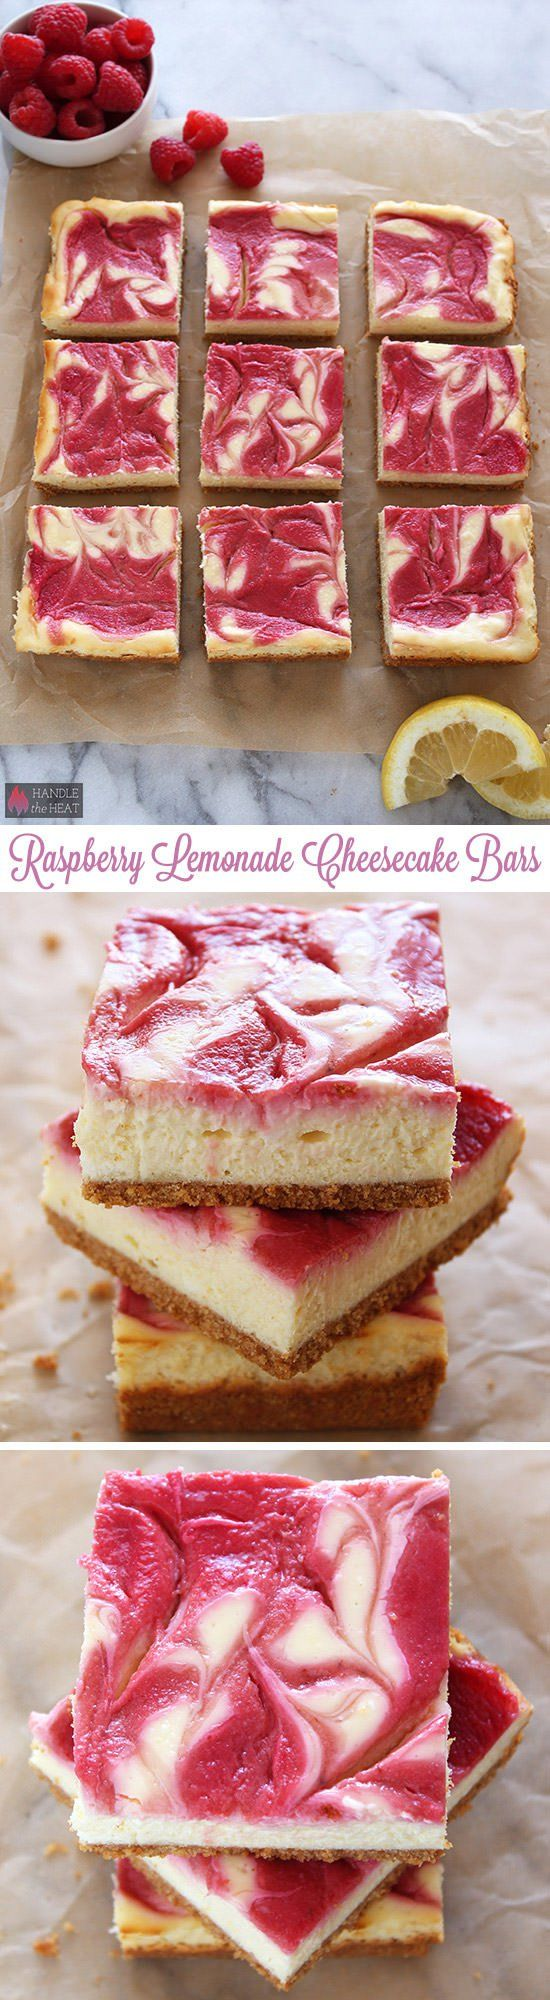 Vibrant Raspberry Lemonade Cheesecake Bars are such a refreshing treat!